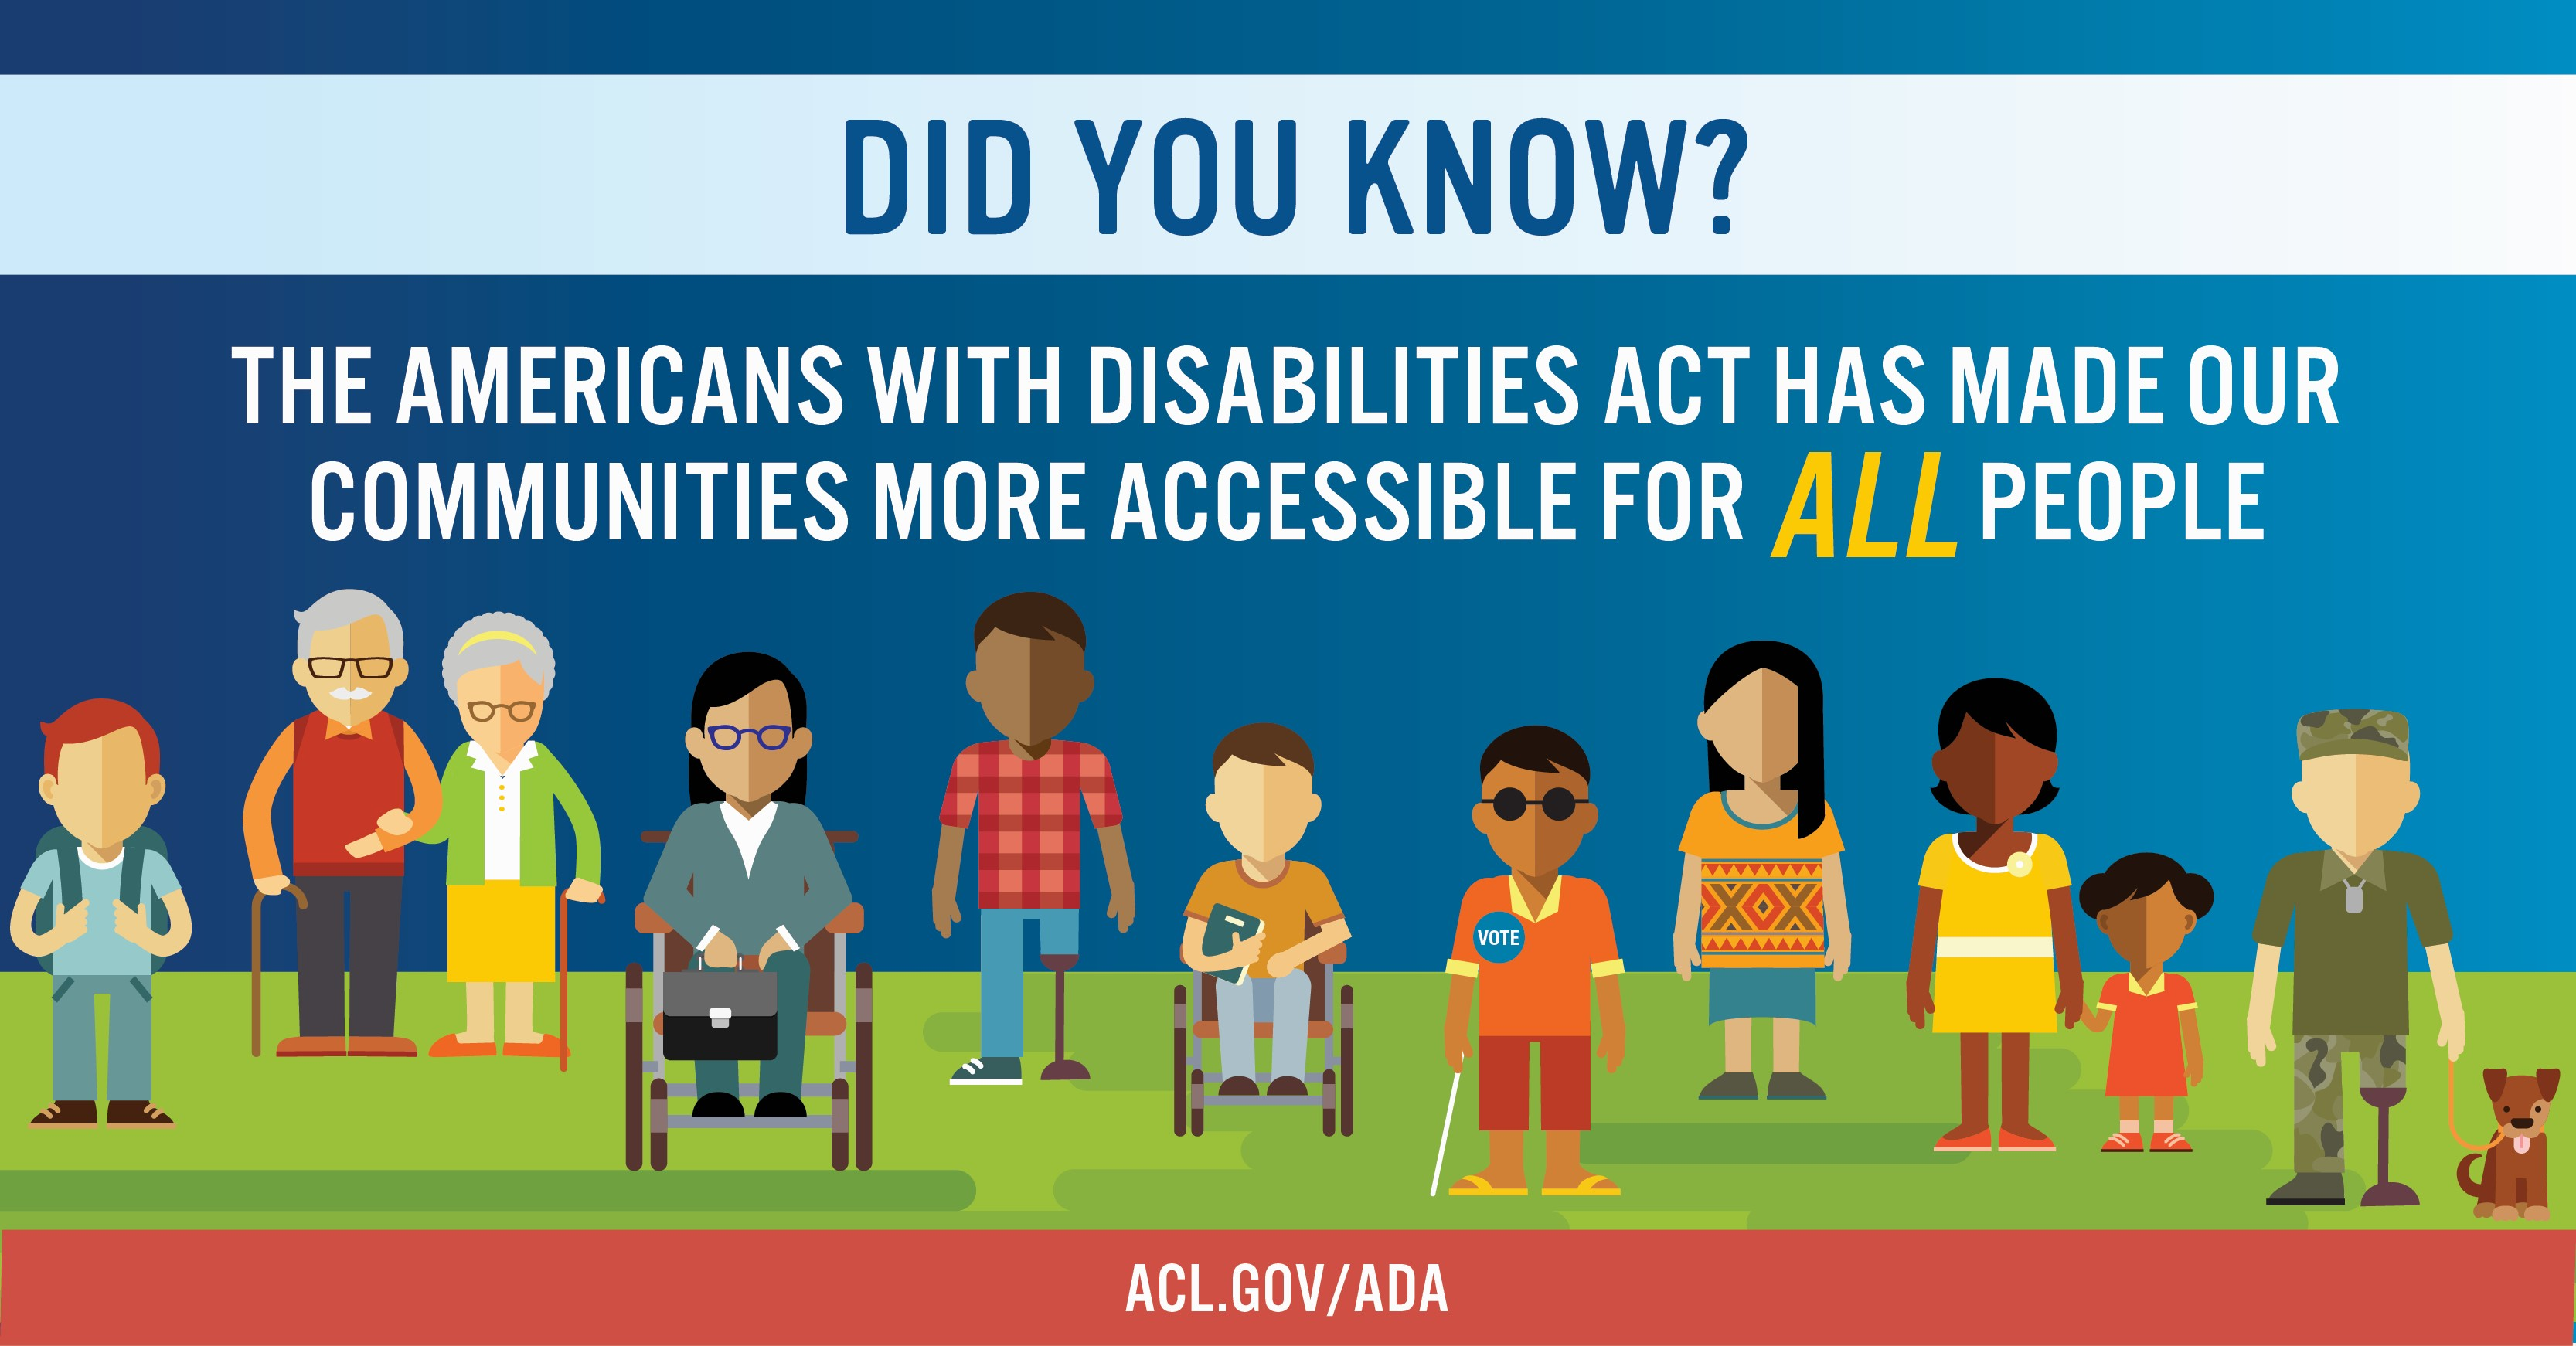 The ADA has made our communities more accessible for all people